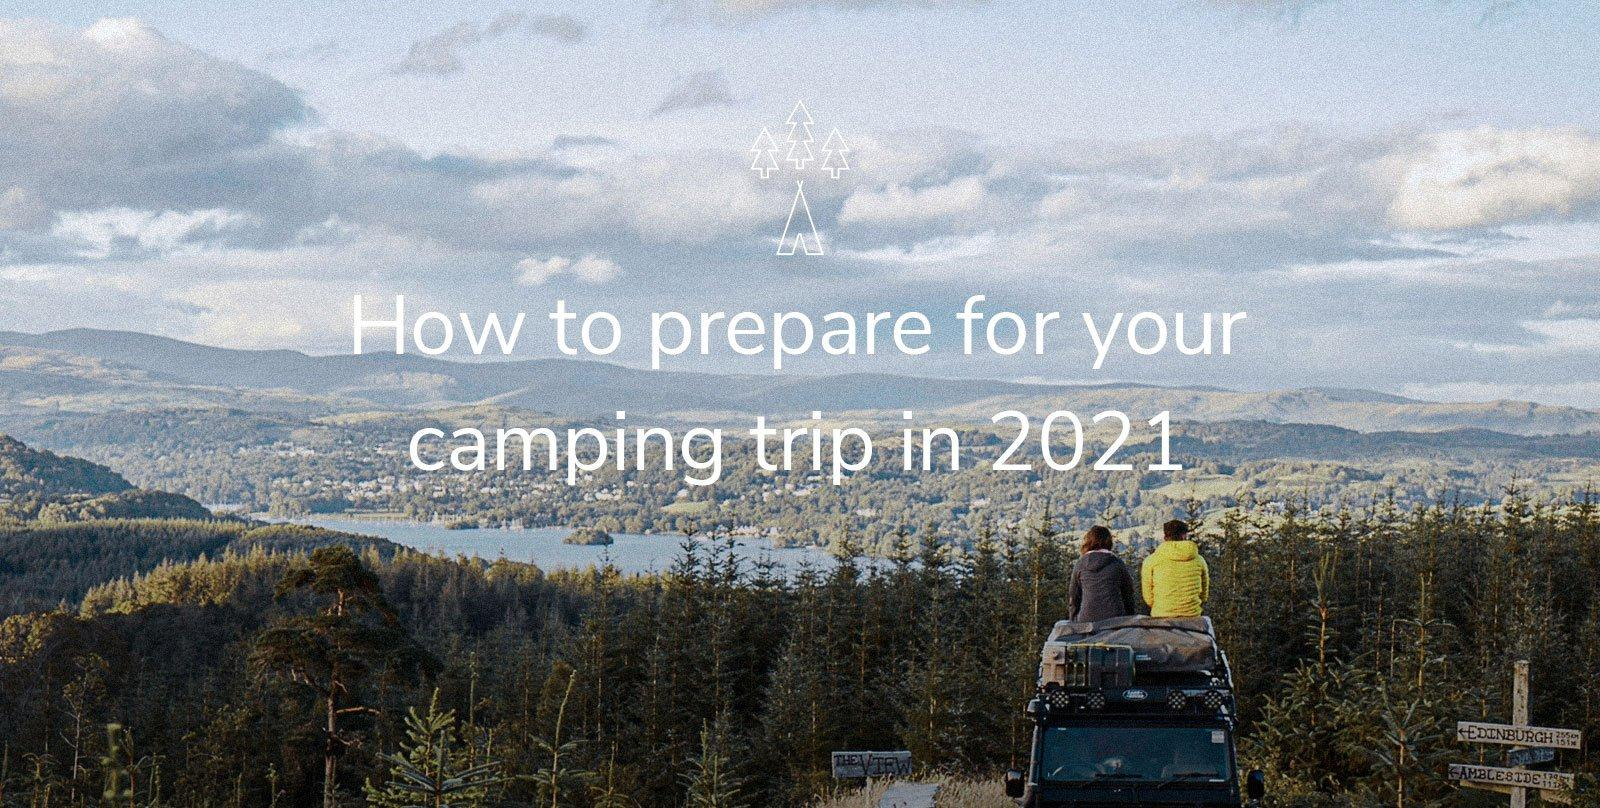 How to prepare for your camping trip in 2021